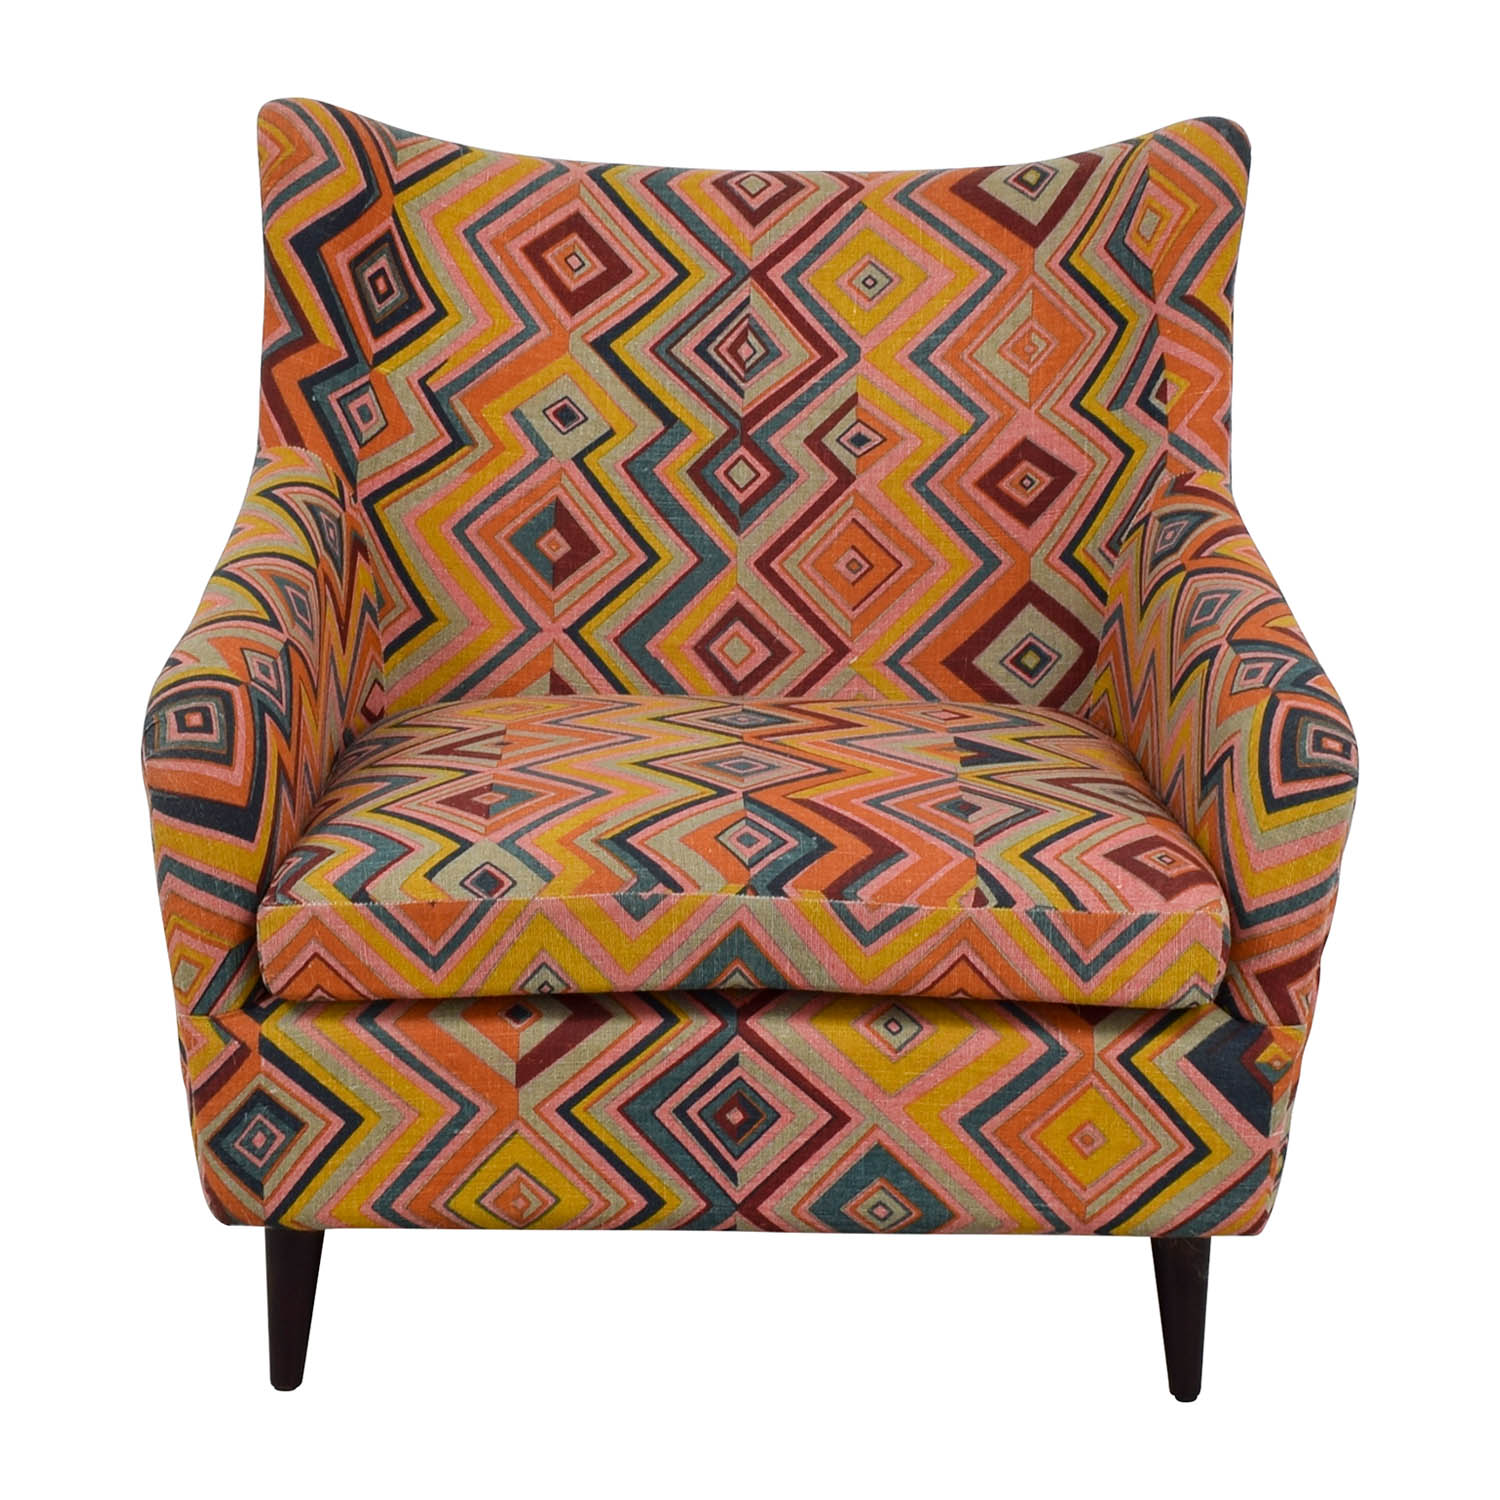 Manor and Mews Multi Colored Upholstered Diamond Chair sale